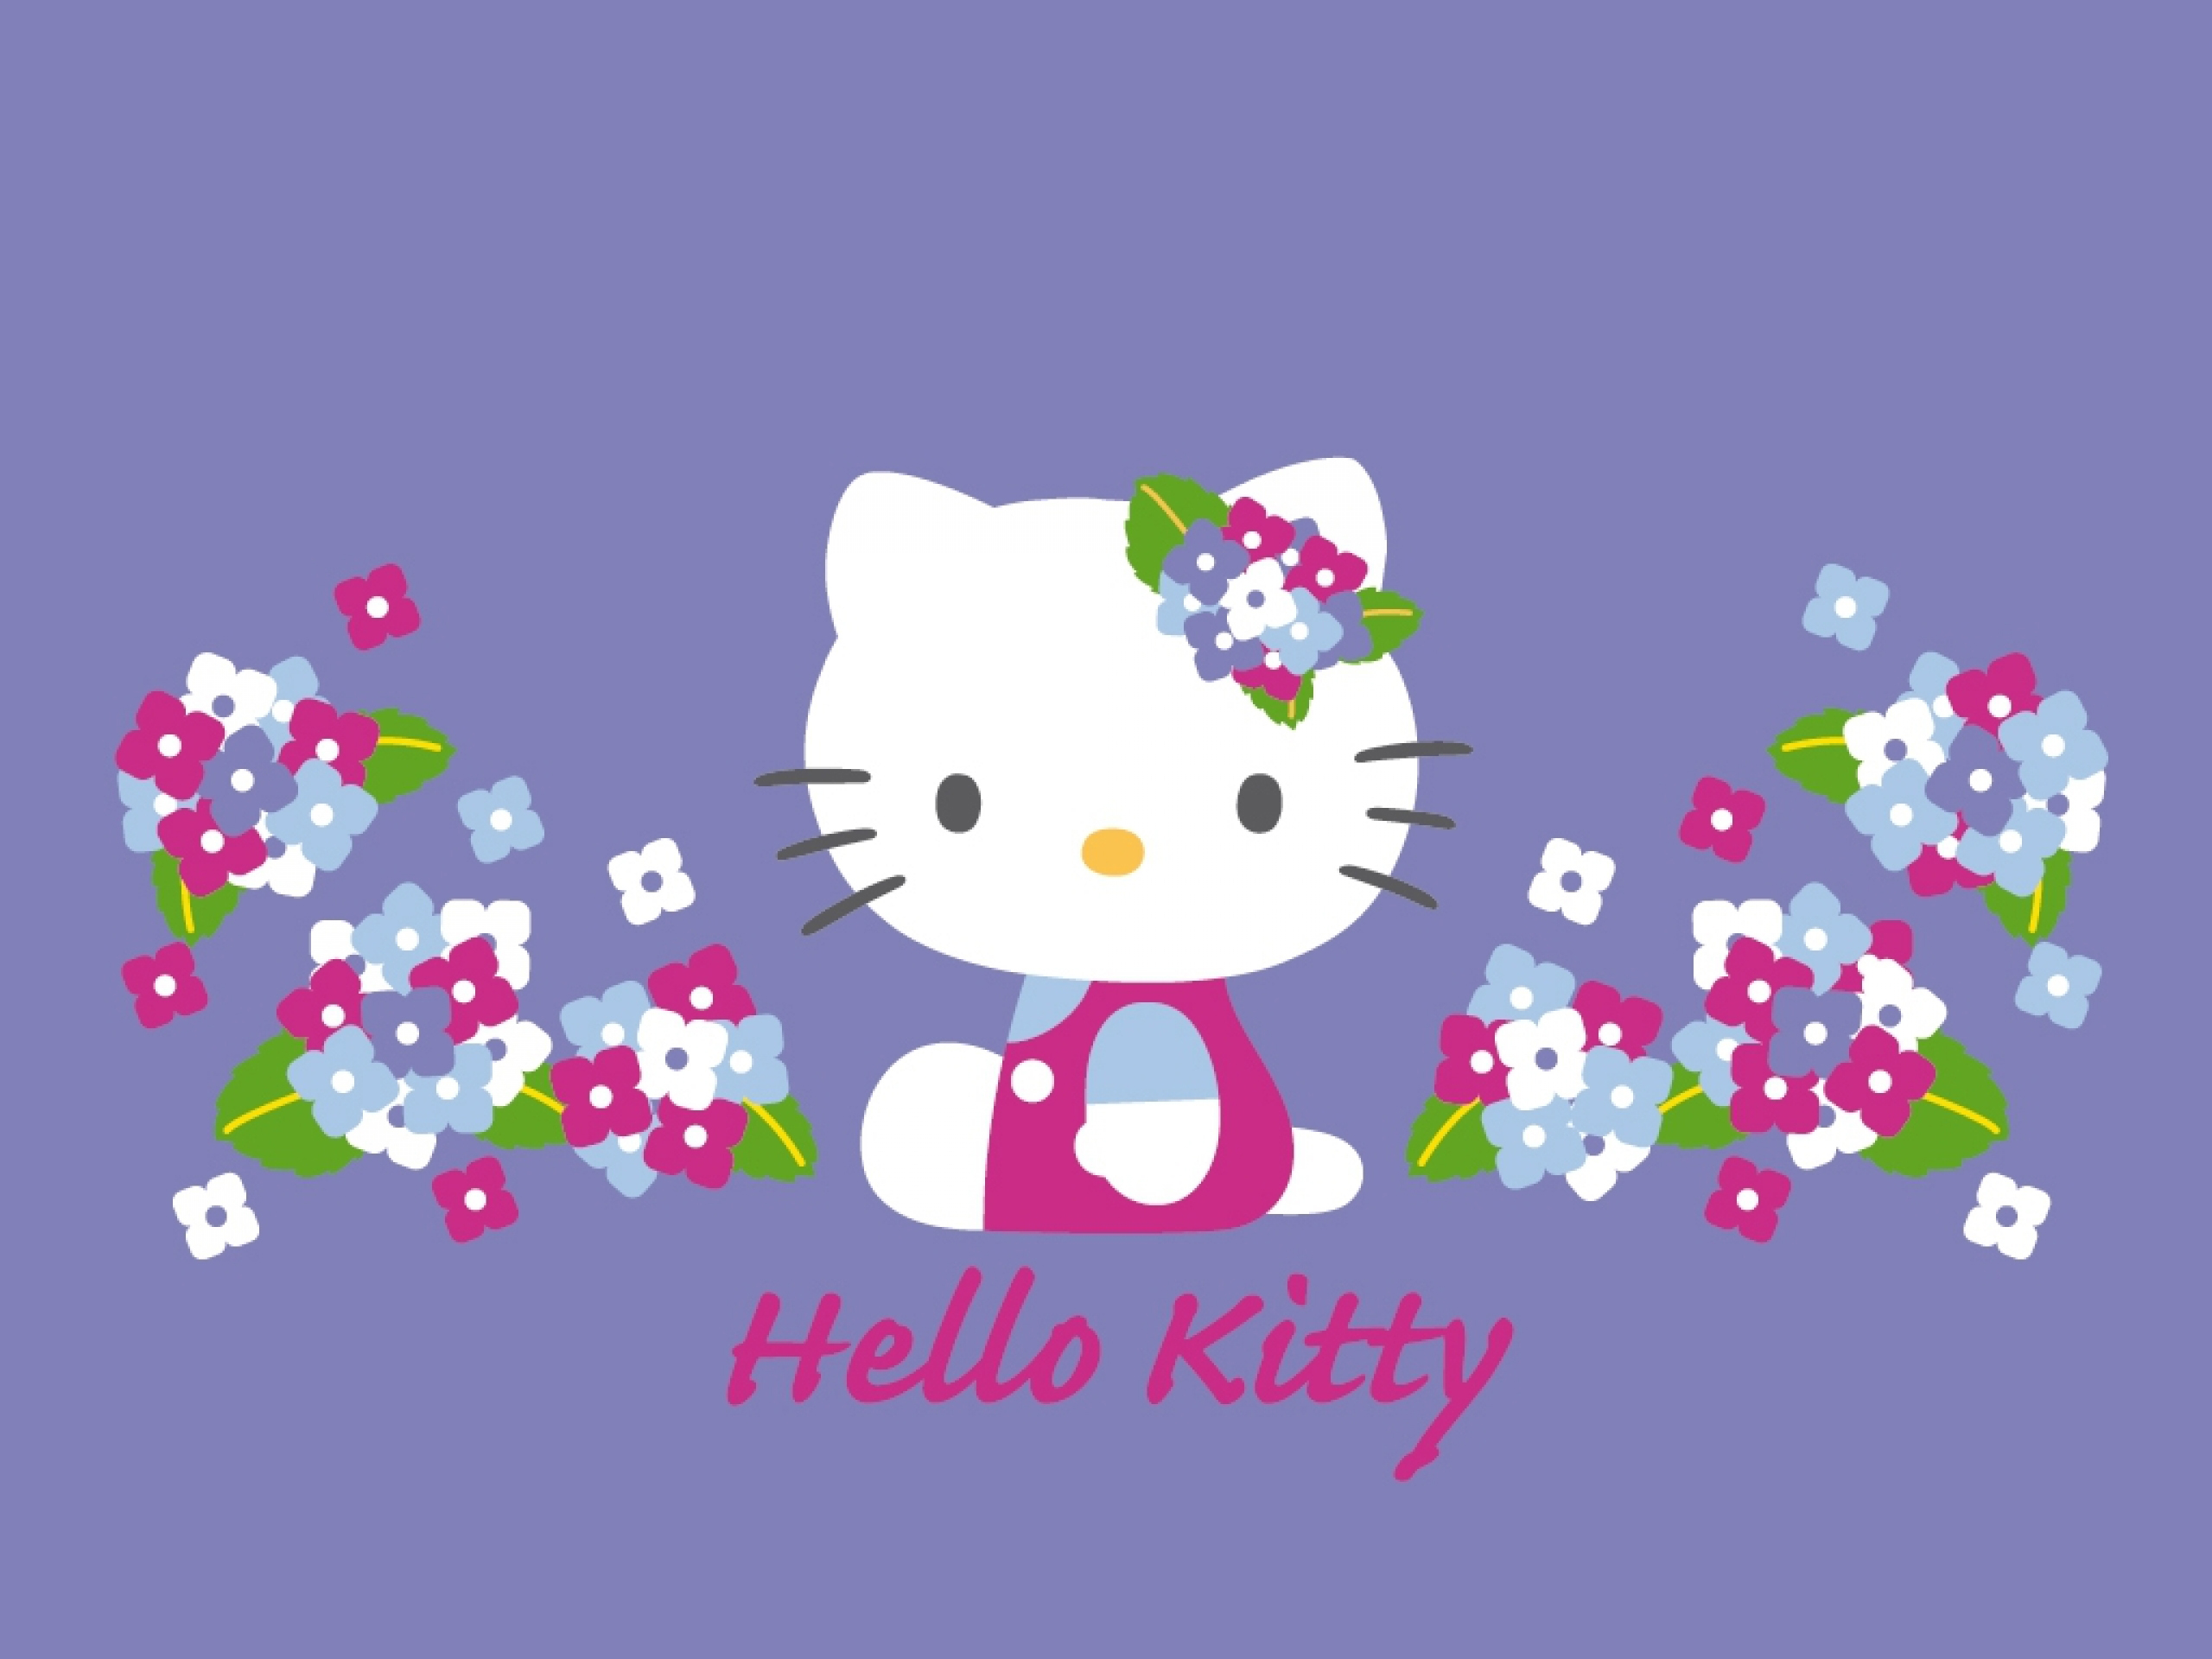 Hello Kitty Wallpaper HD 2560x1920